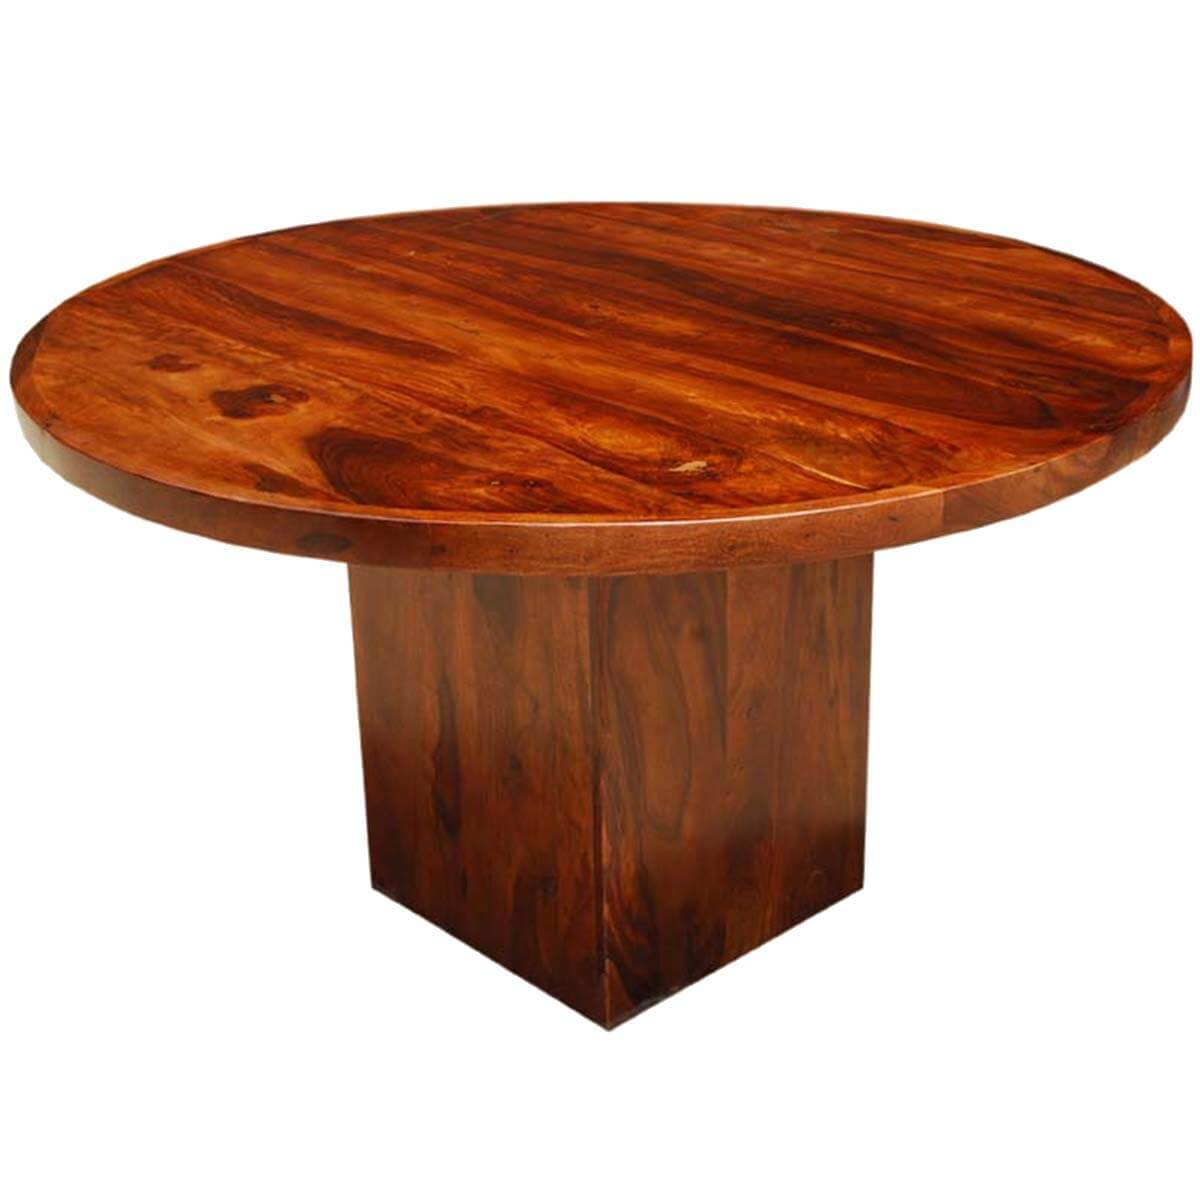 solid wood rustic round dining table w square pedestal. Black Bedroom Furniture Sets. Home Design Ideas